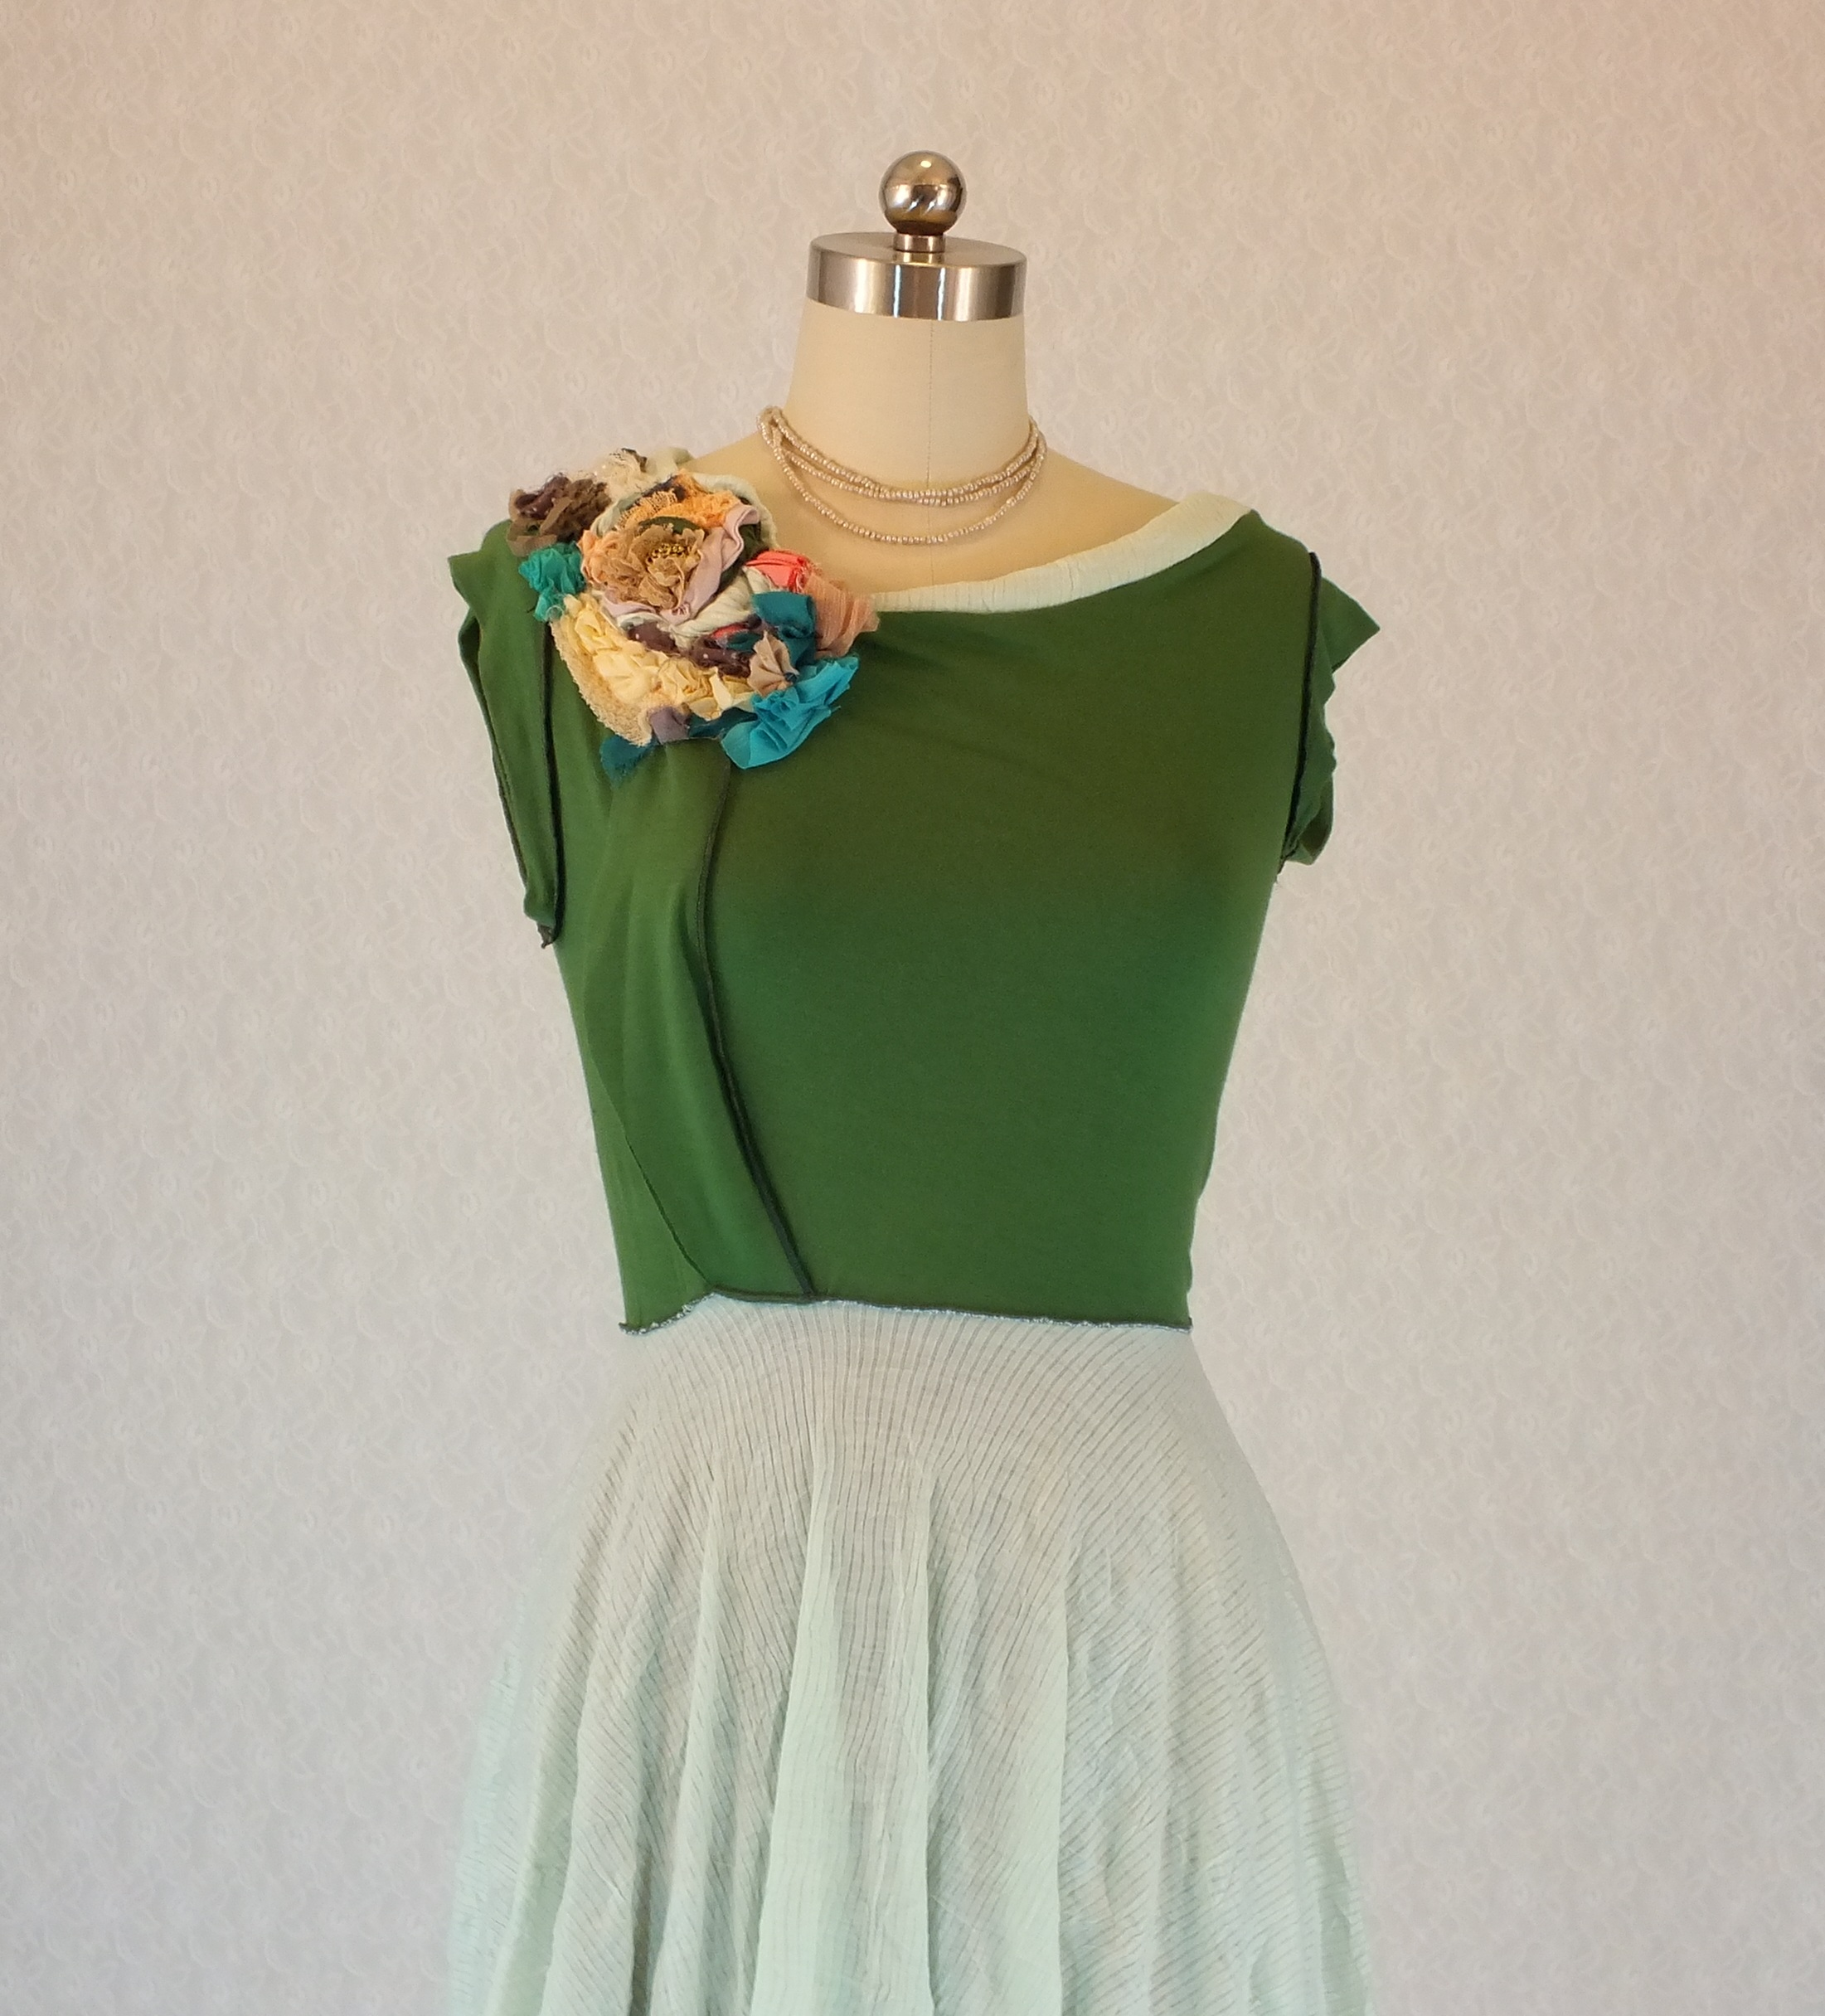 Handmade Vintaged Green Garden Dress Liat Azar